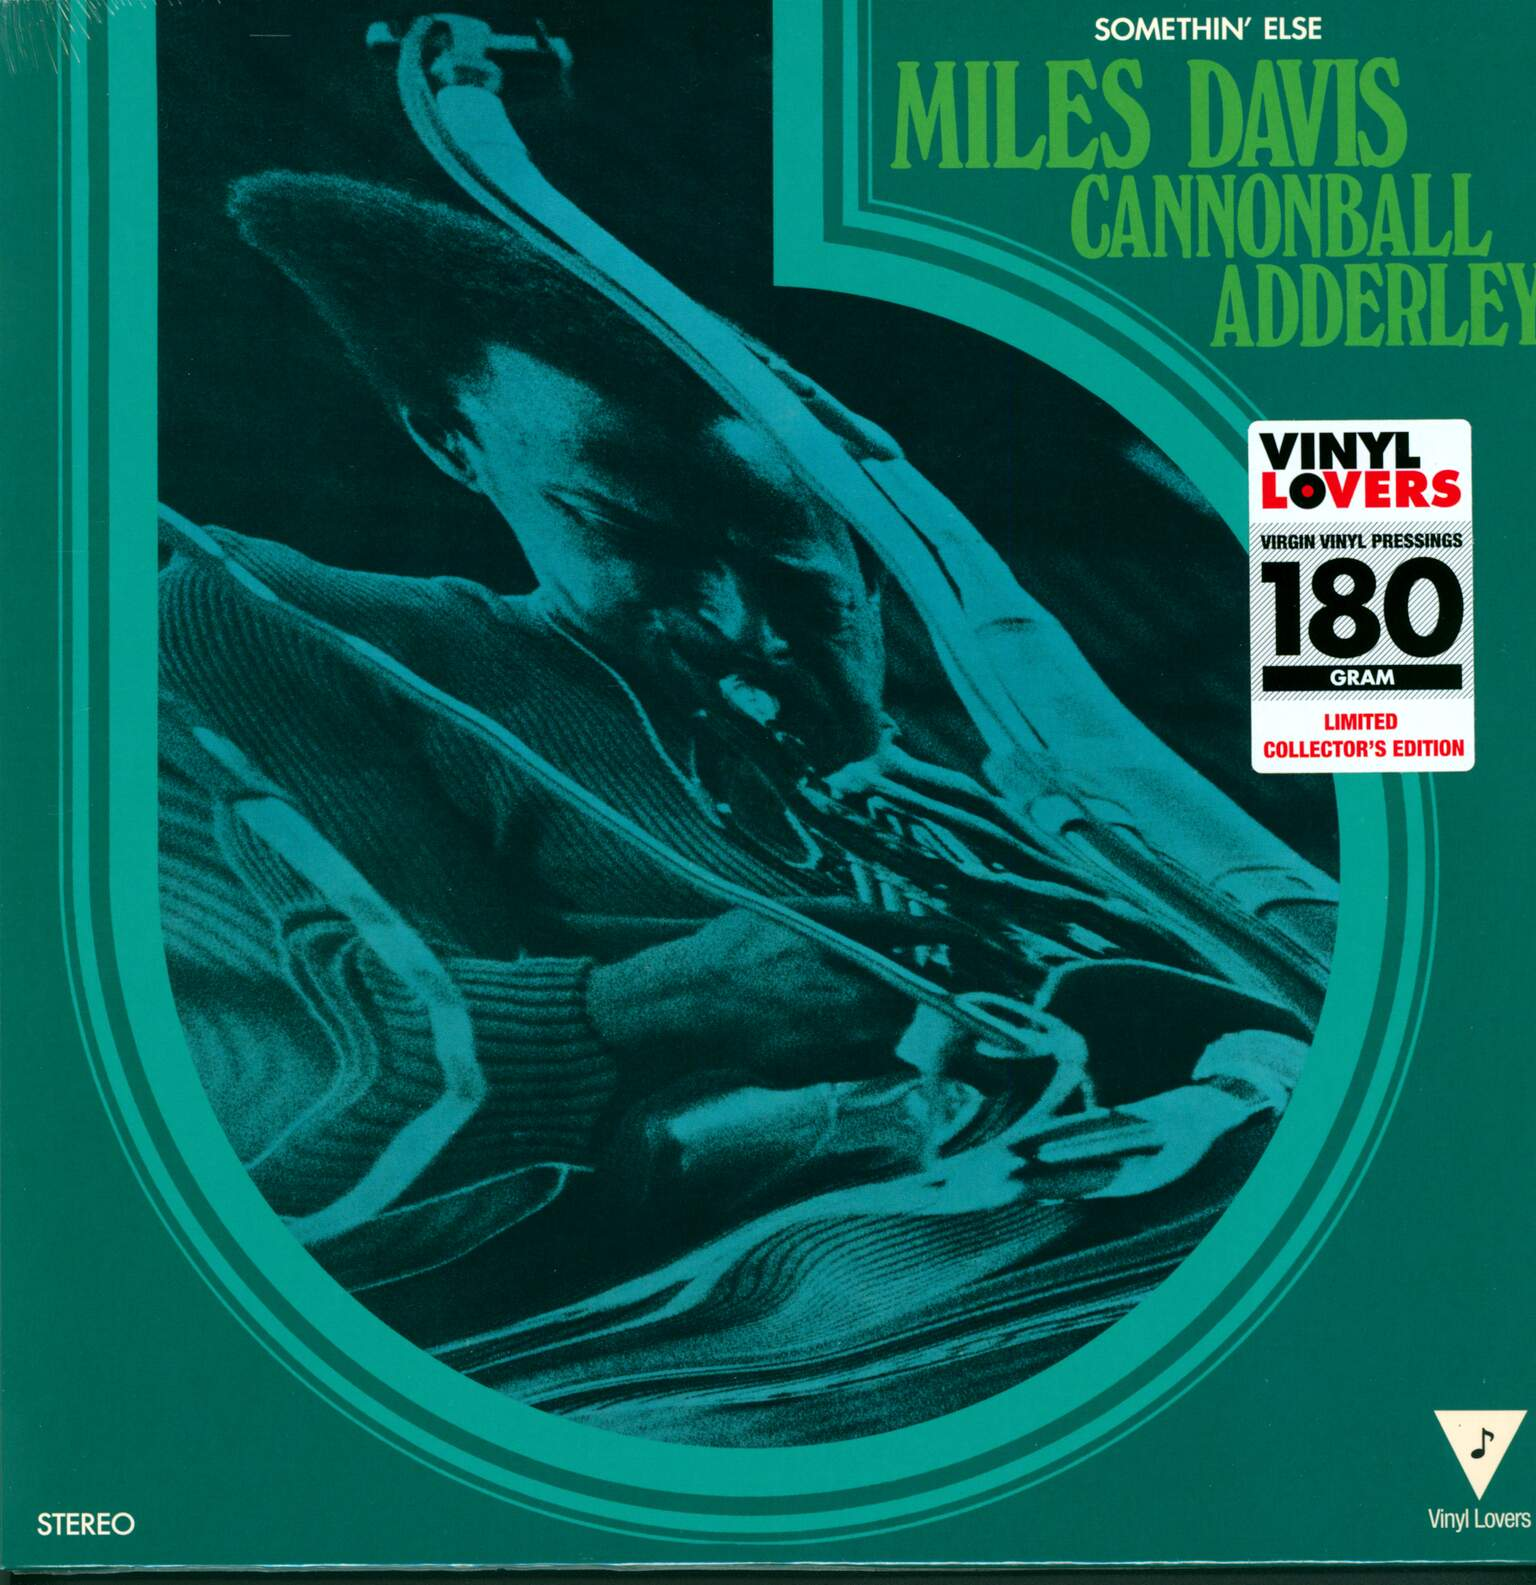 Miles Davis: Somethin' Else, 1×LP (Vinyl)